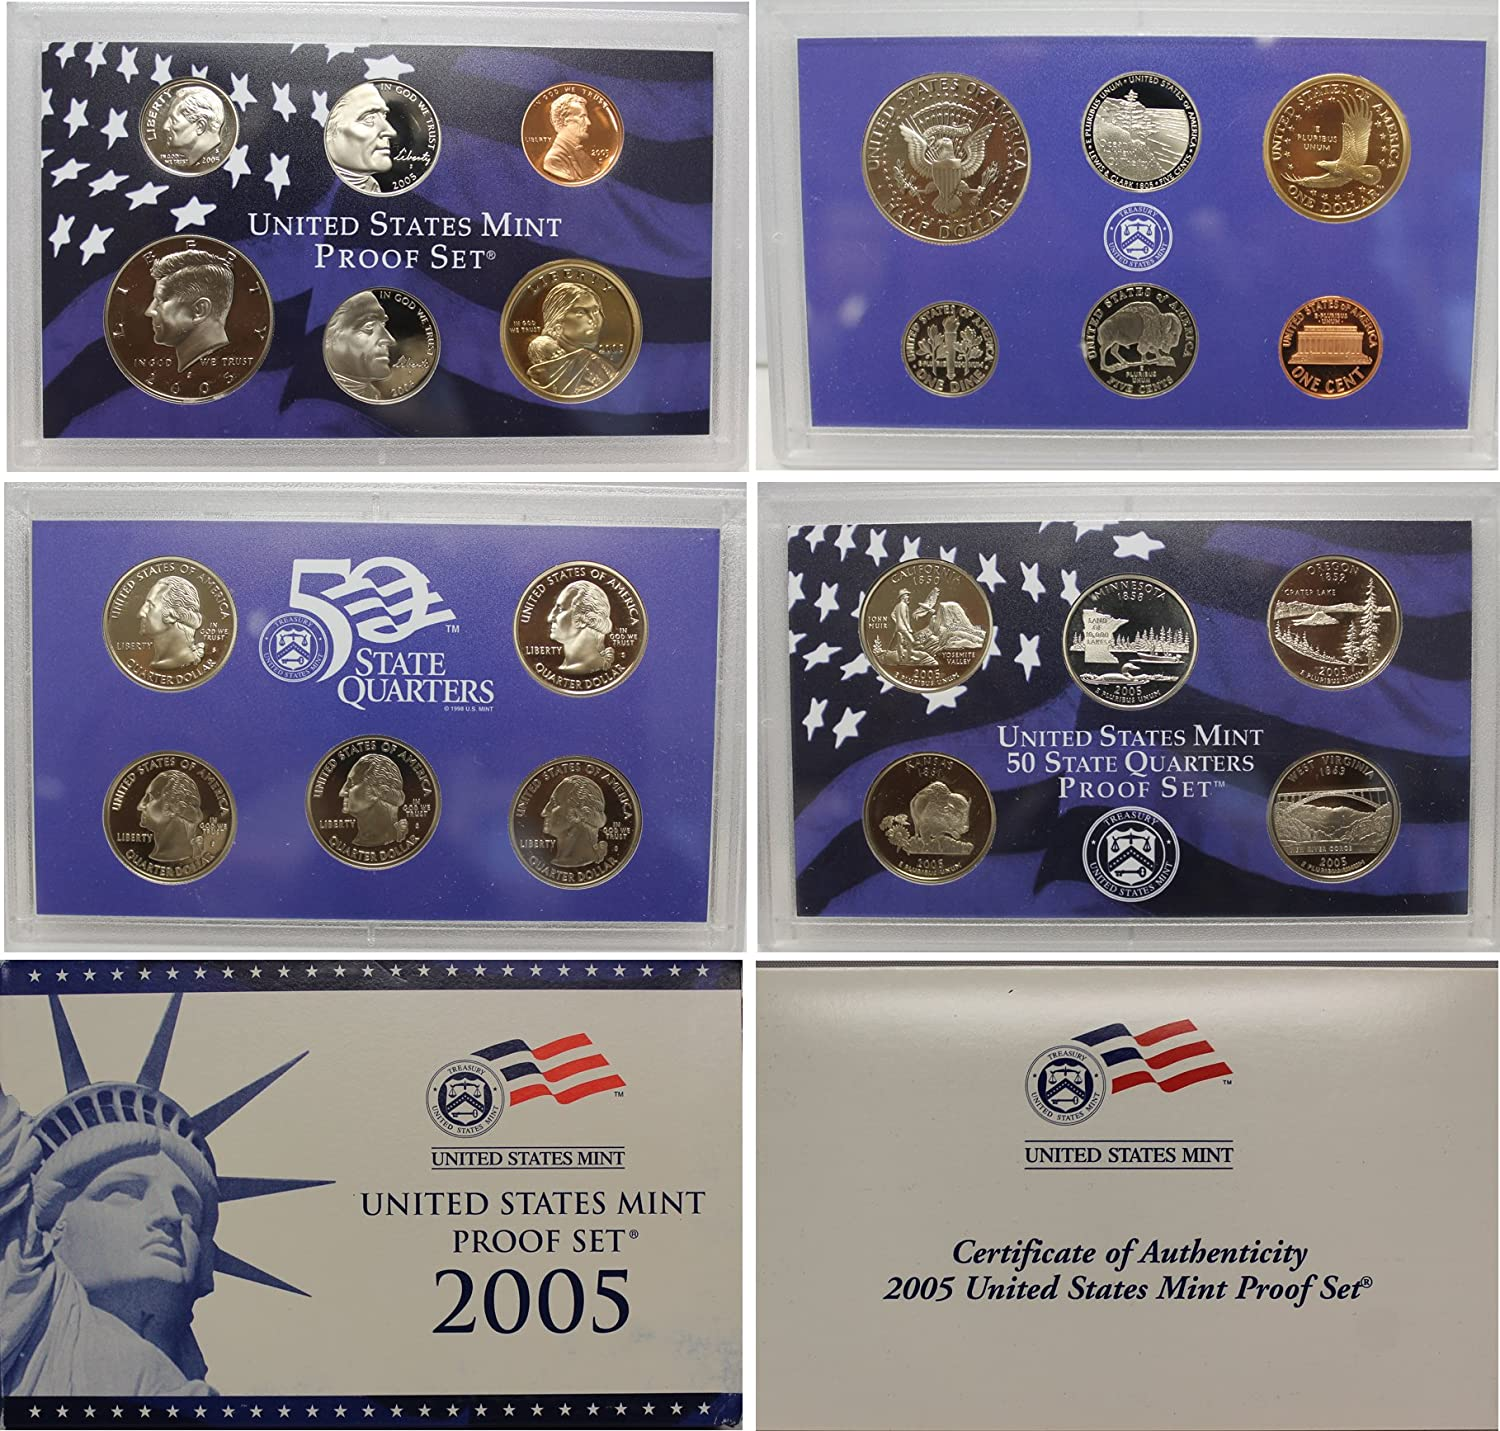 11 Coin Set 2005 United States Mint Proof Set with Certificate of Authenticity